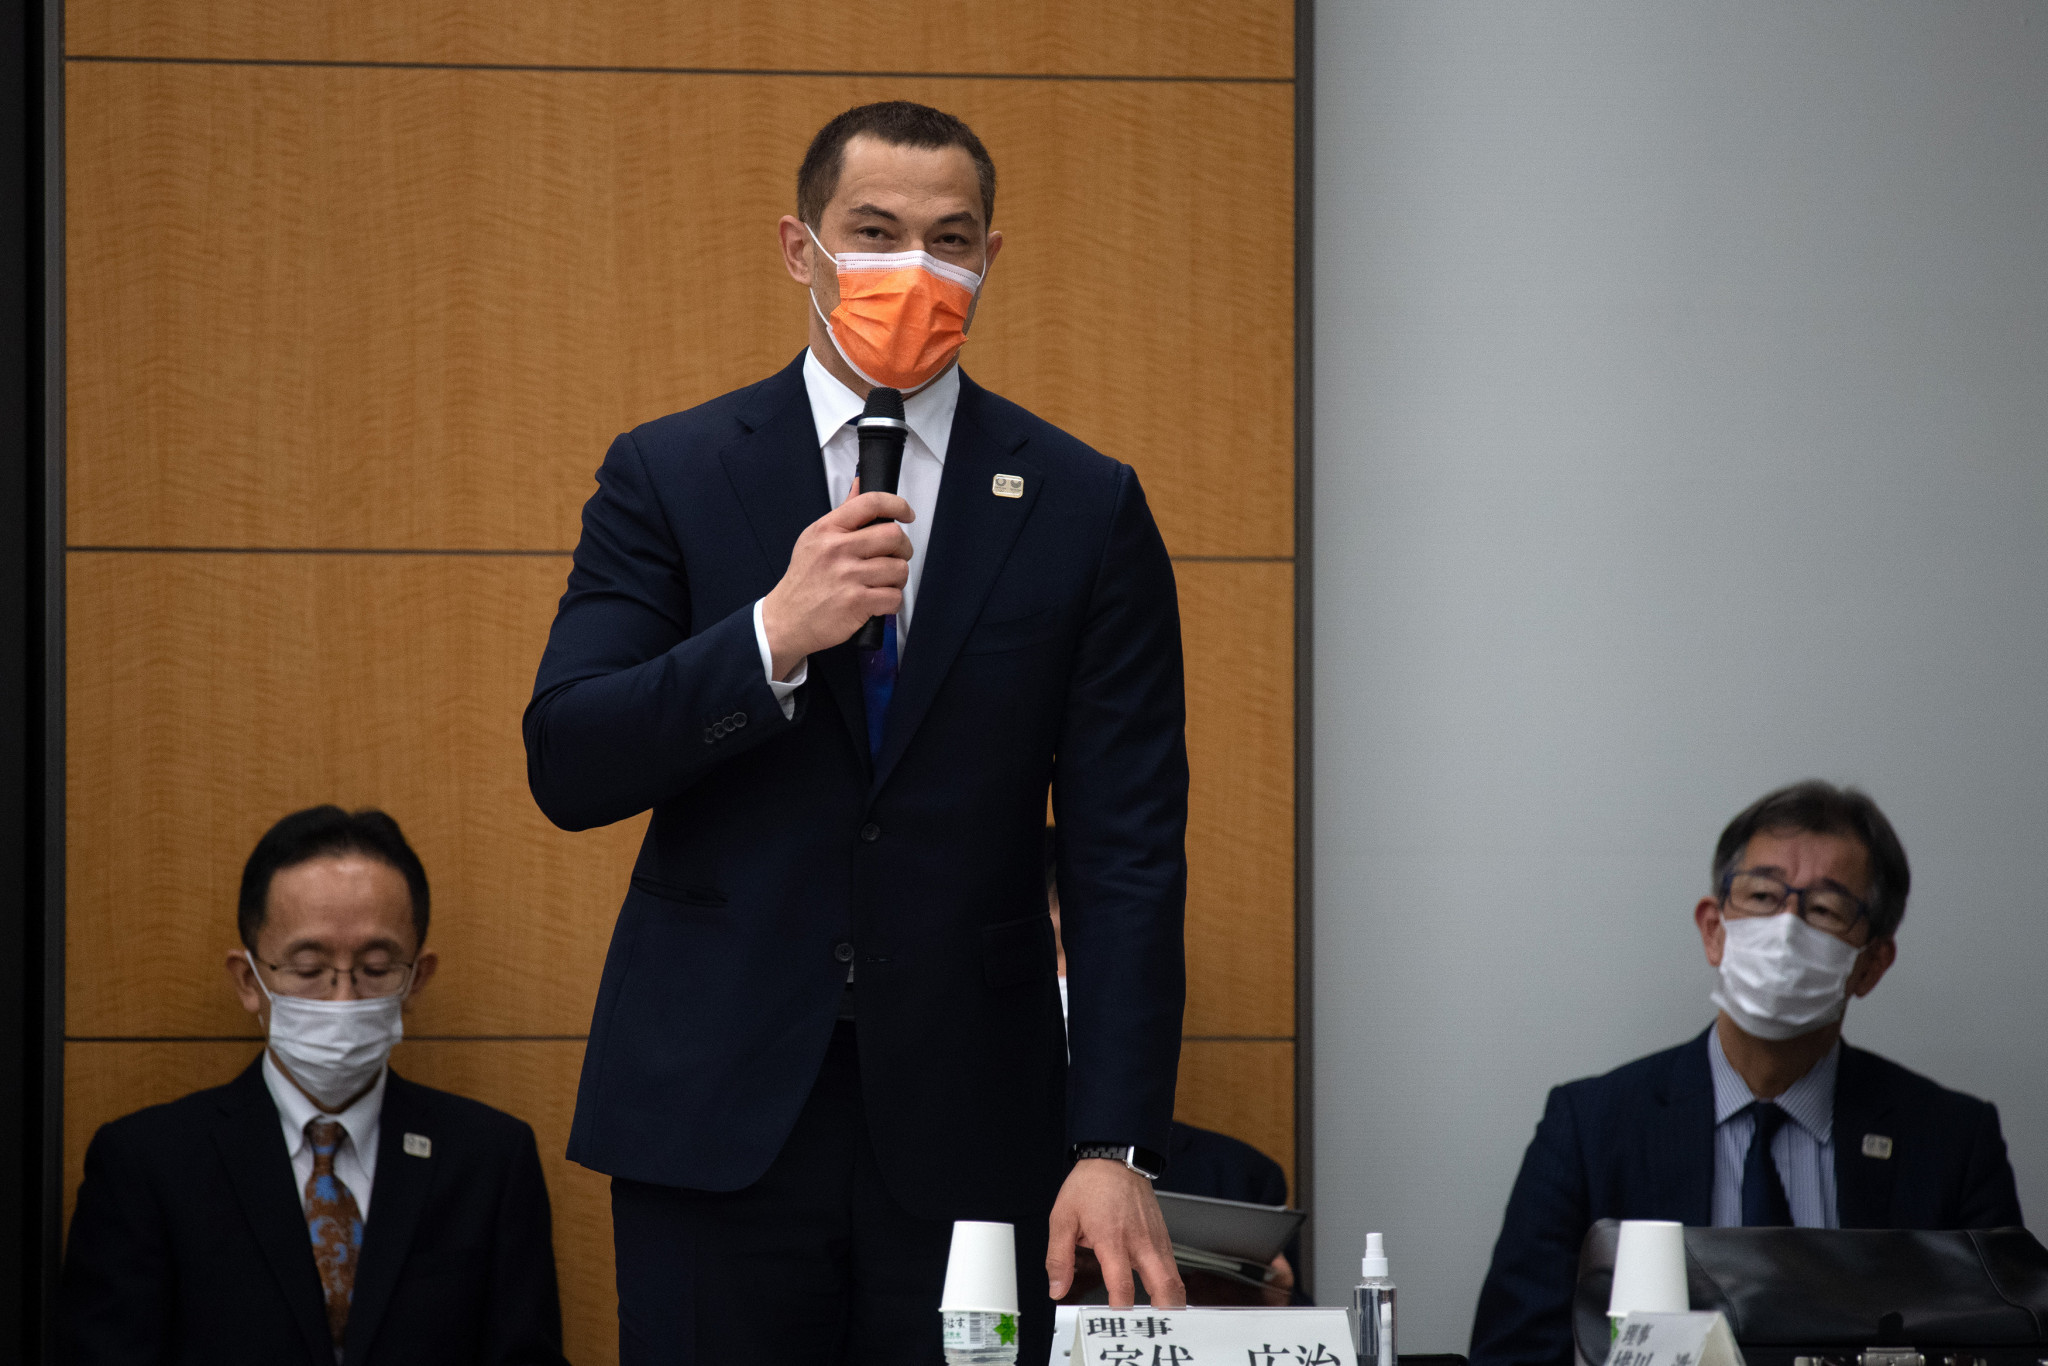 Koji Murofushi was appointed commissioner of the Japan Sports Agency last September ©Getty Images